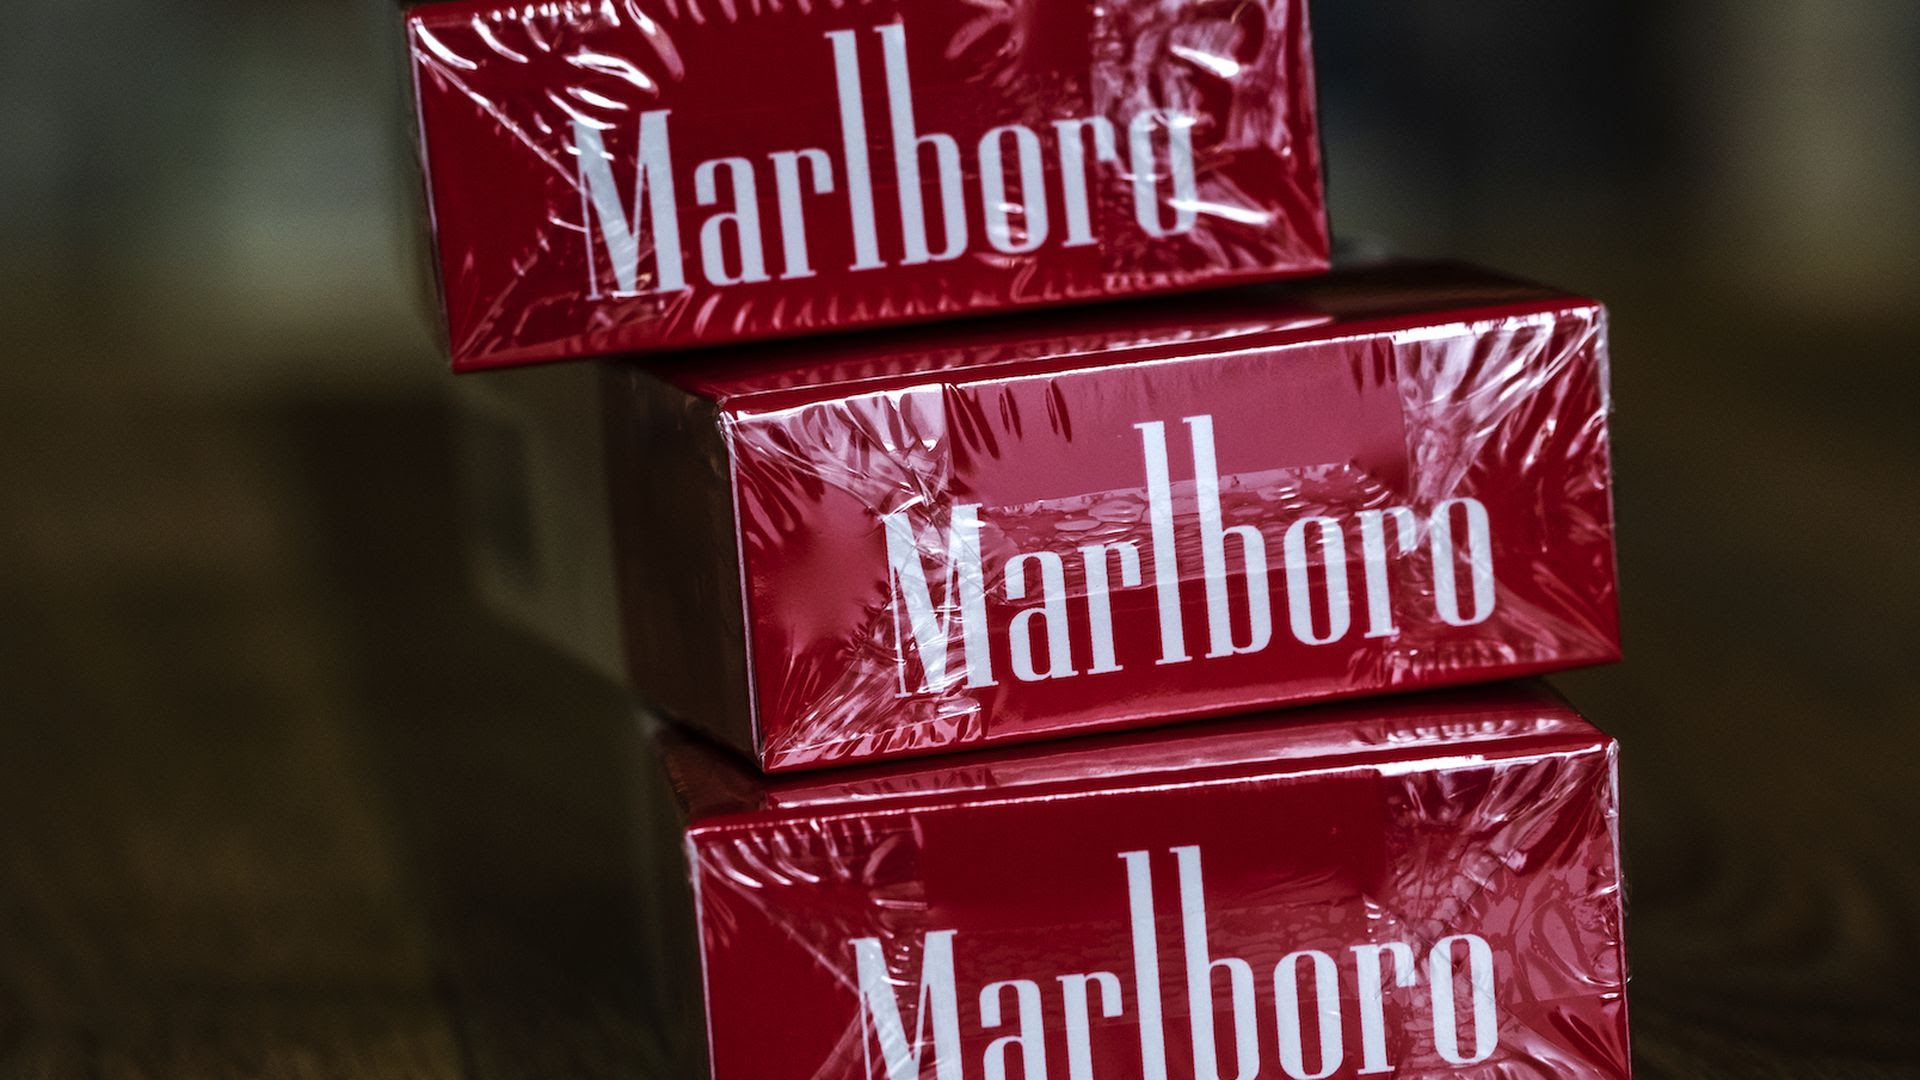 Marlboro cigarettes staked on top of each other